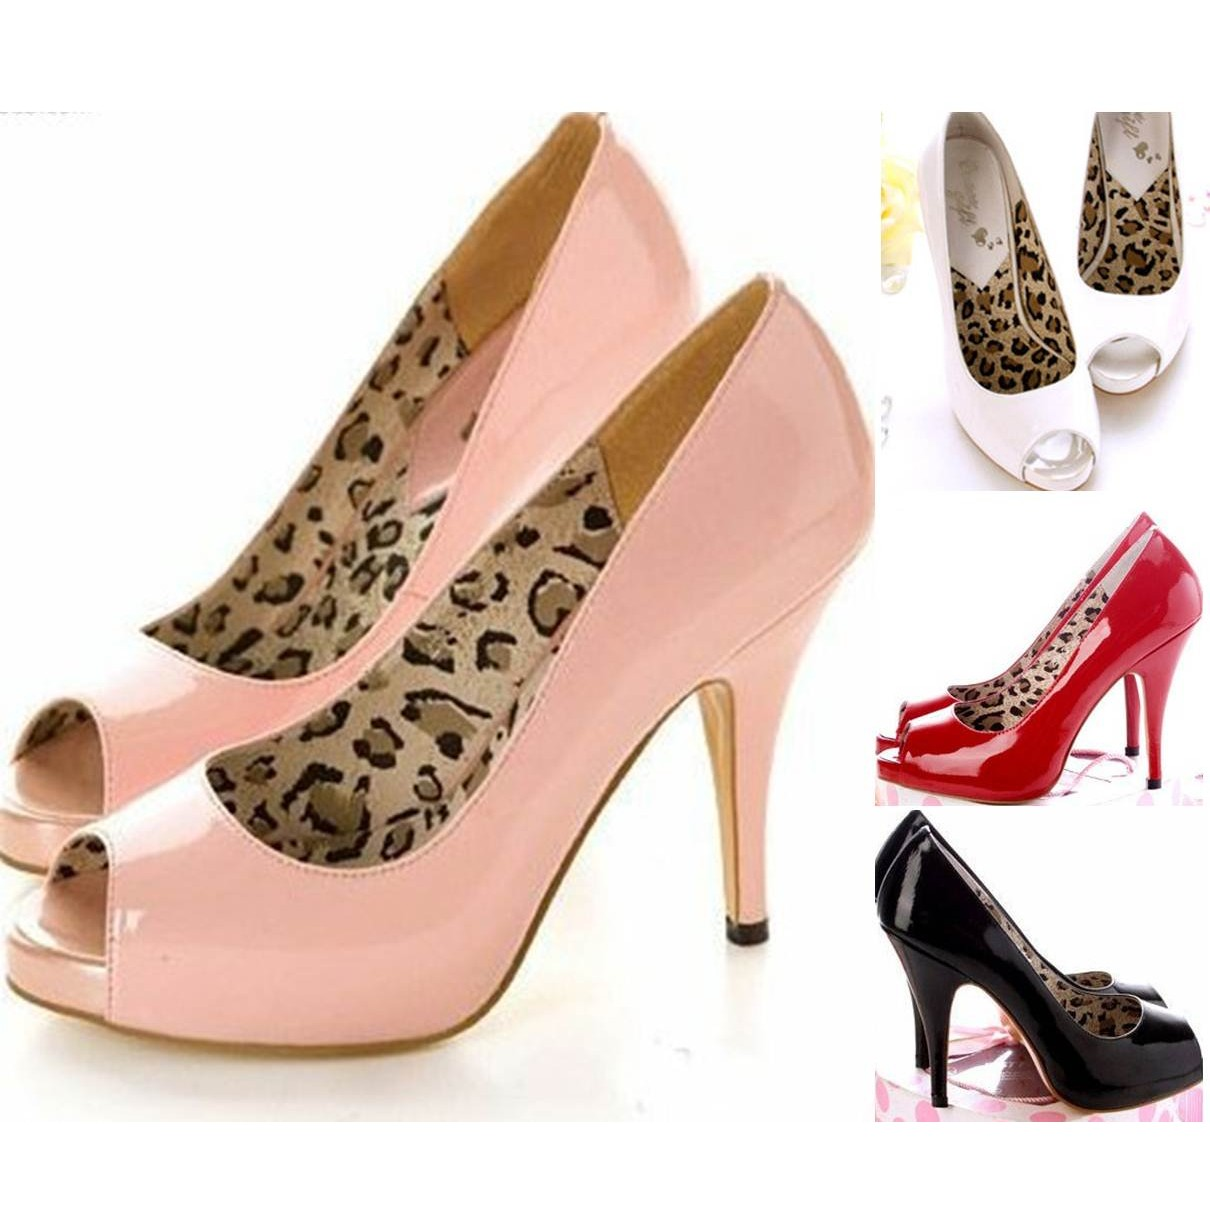 Open Peep Toe Pump High Heels Shoes - SH02#